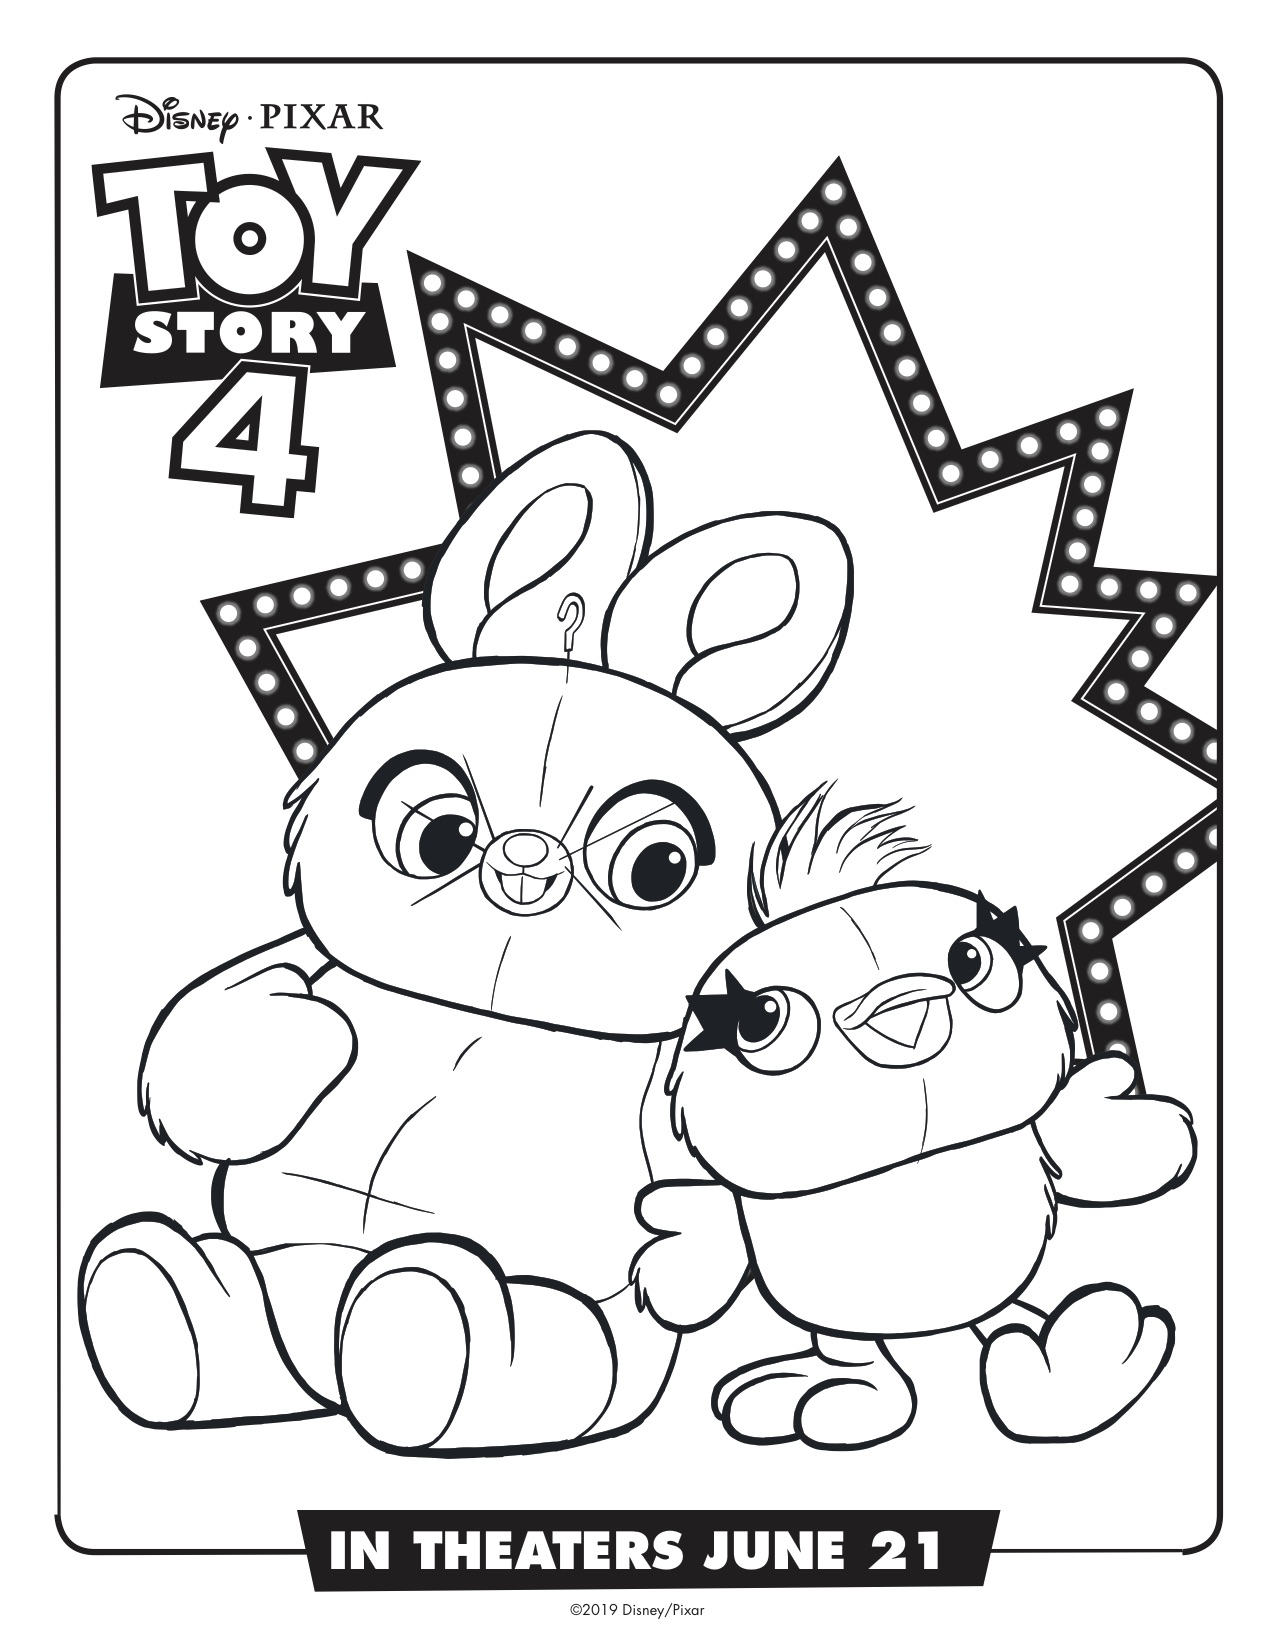 Toy Story 4 Ducky And Bunny Printable Coloring Page Simply